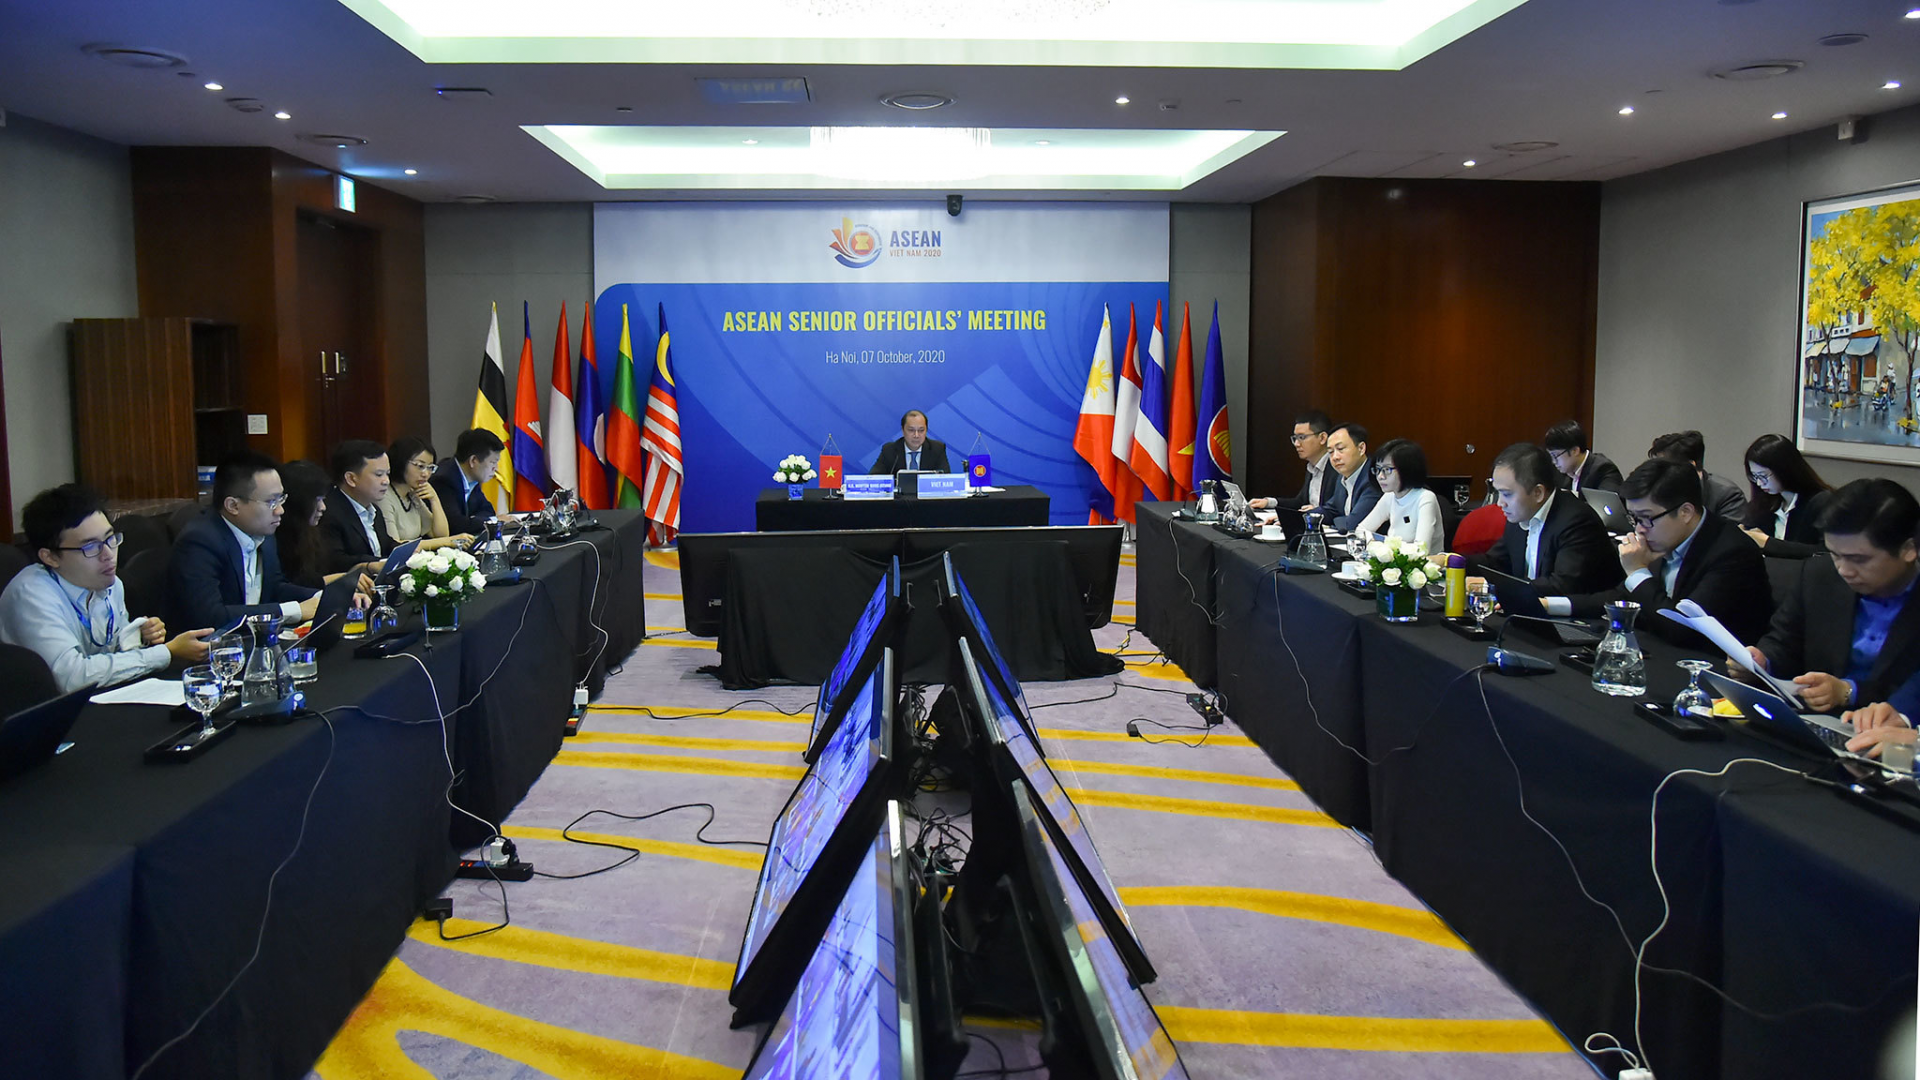 asean pledges to coordinate with china soon complete talks for code of conduct in south sea bien dong sea